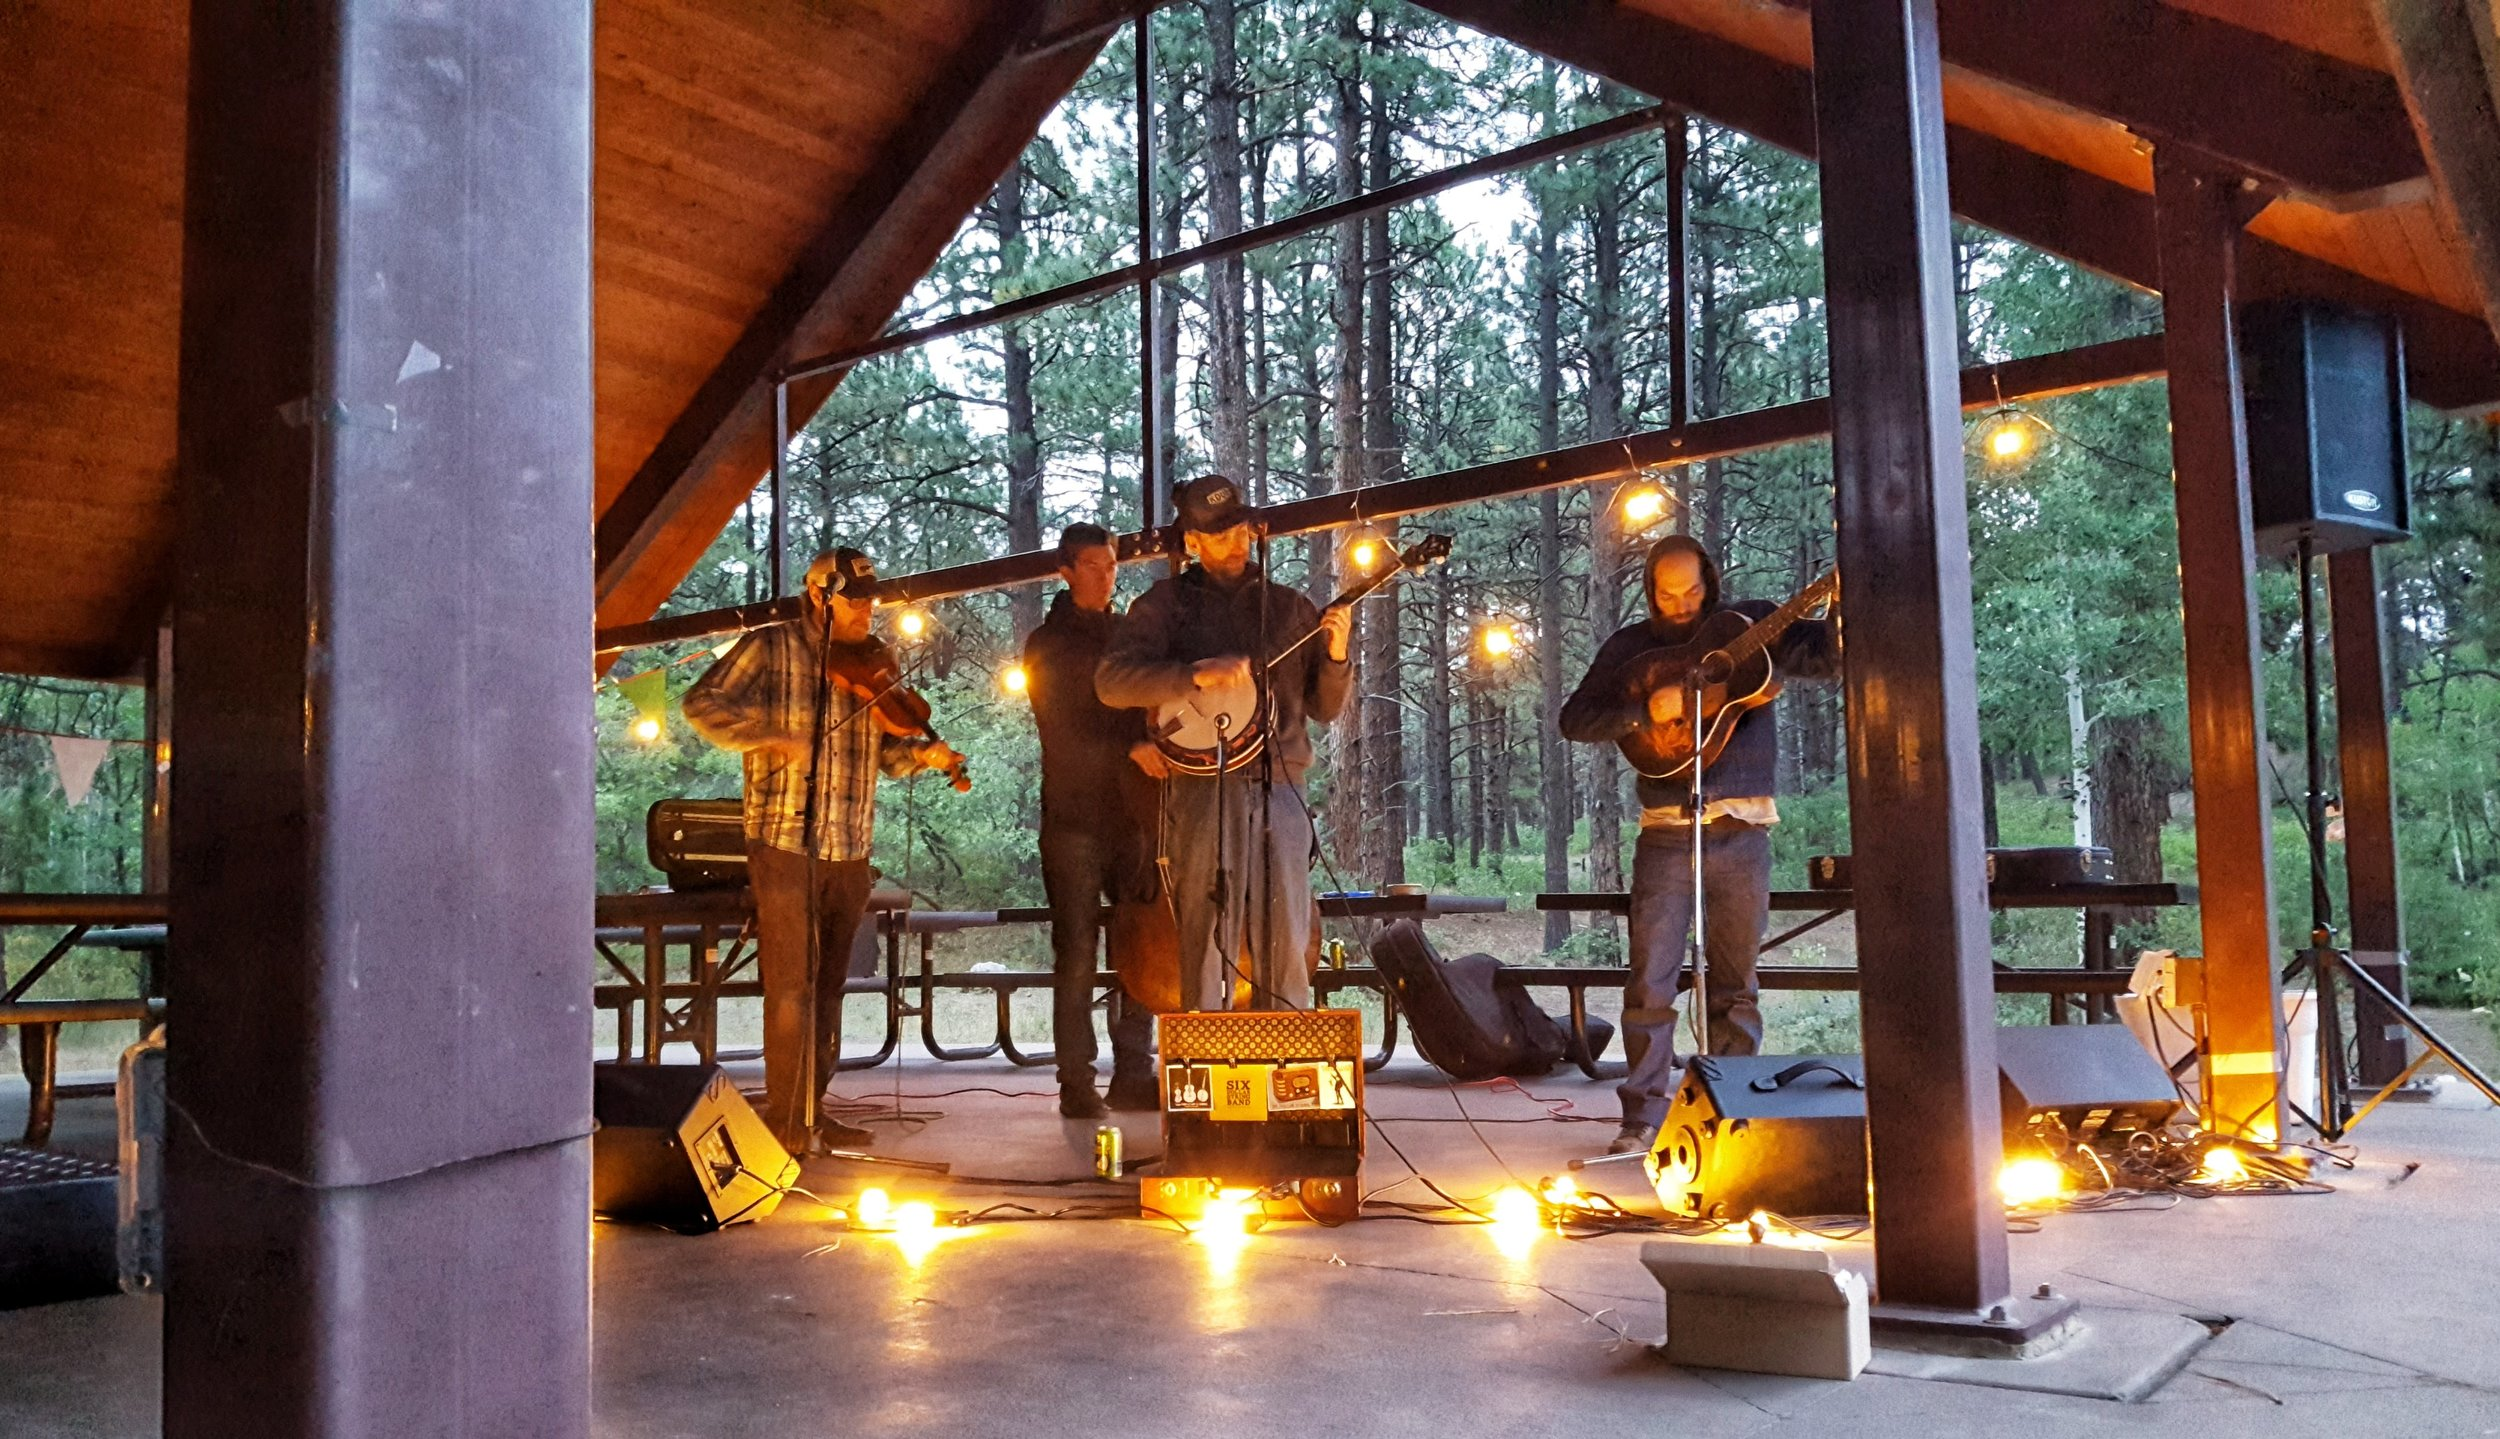 Six Dollar String band finished their act playing under a starry sky and next to a blazing campfire!